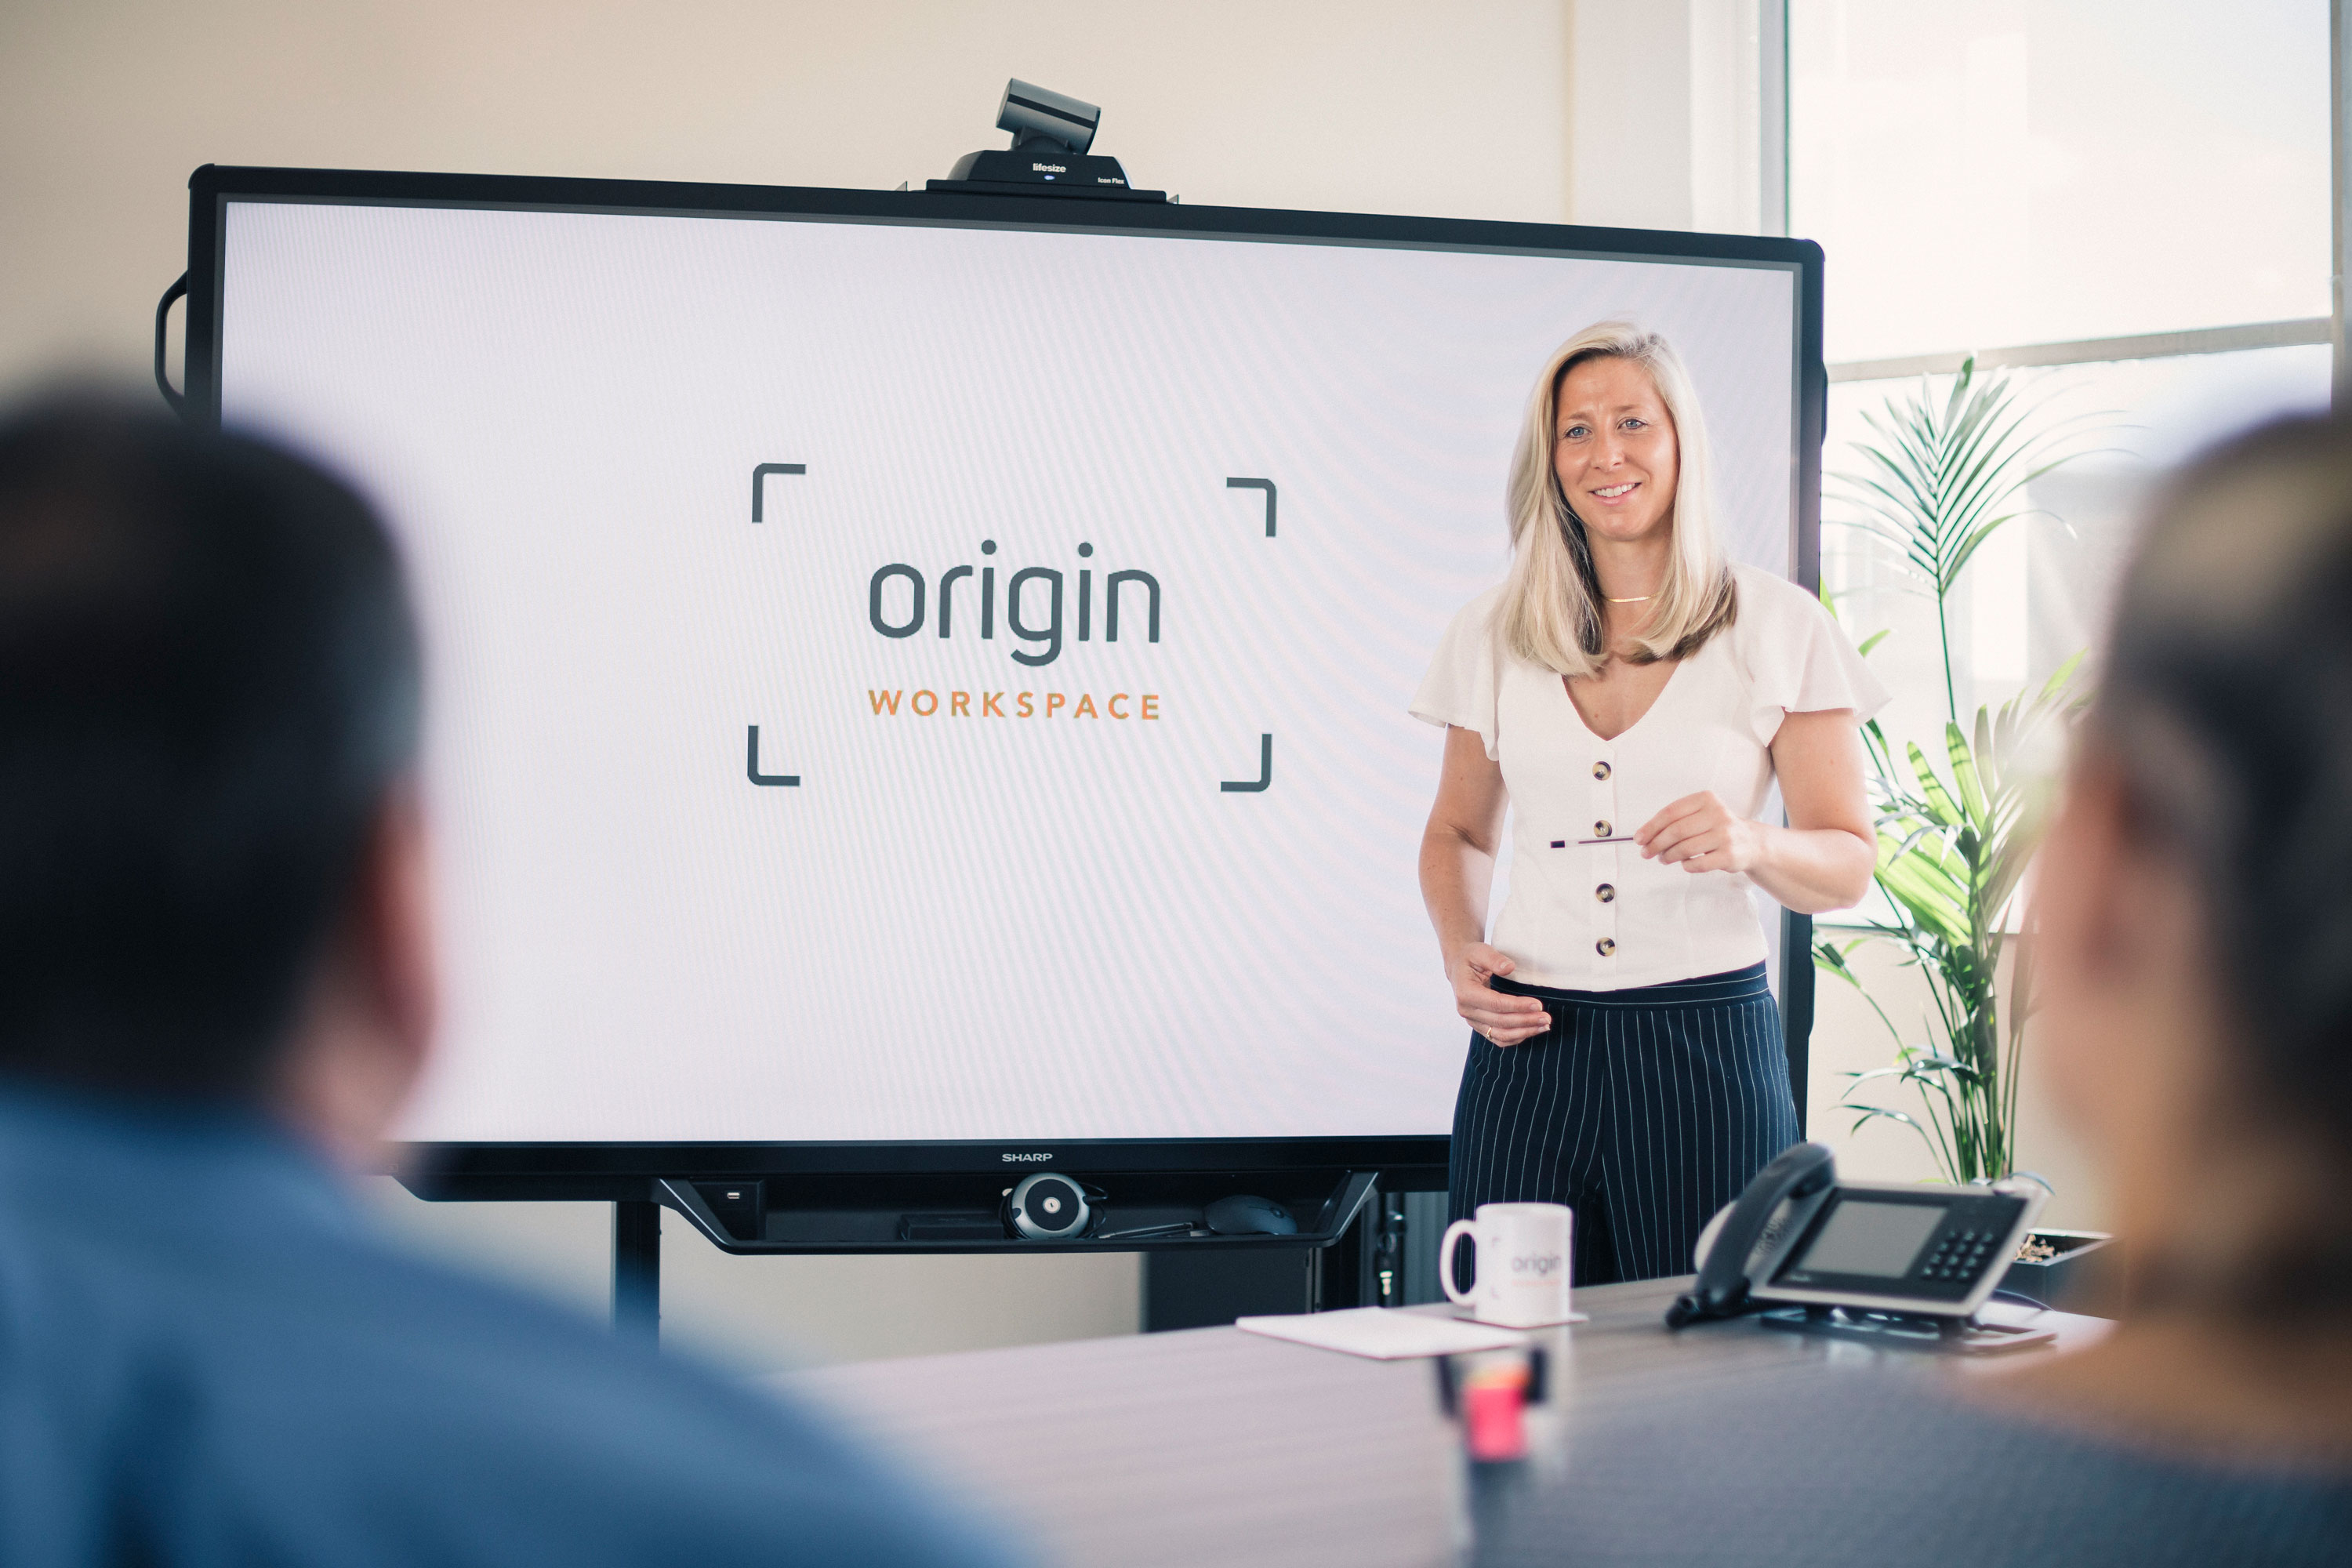 Origin Workspace, Bristol